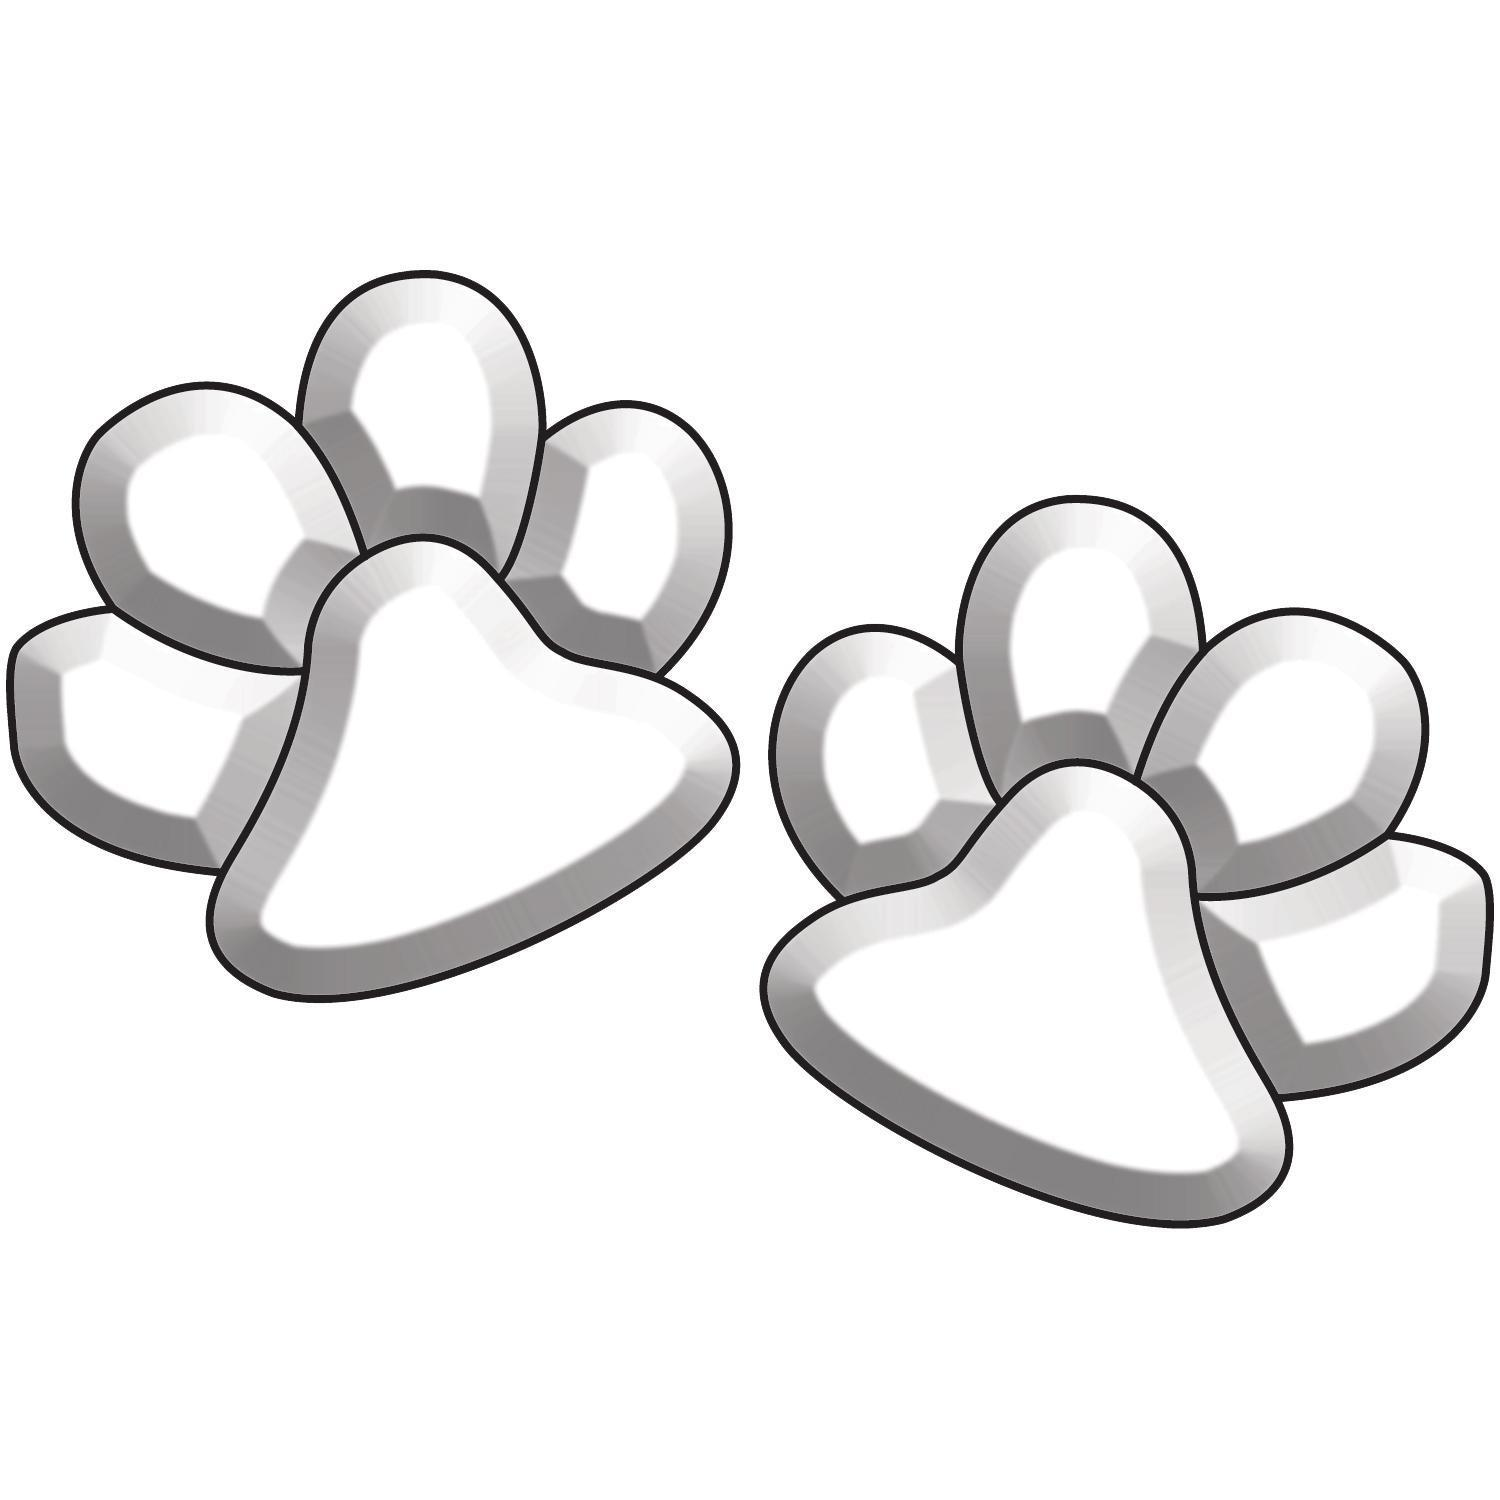 Paw Prints Bevel Clusters